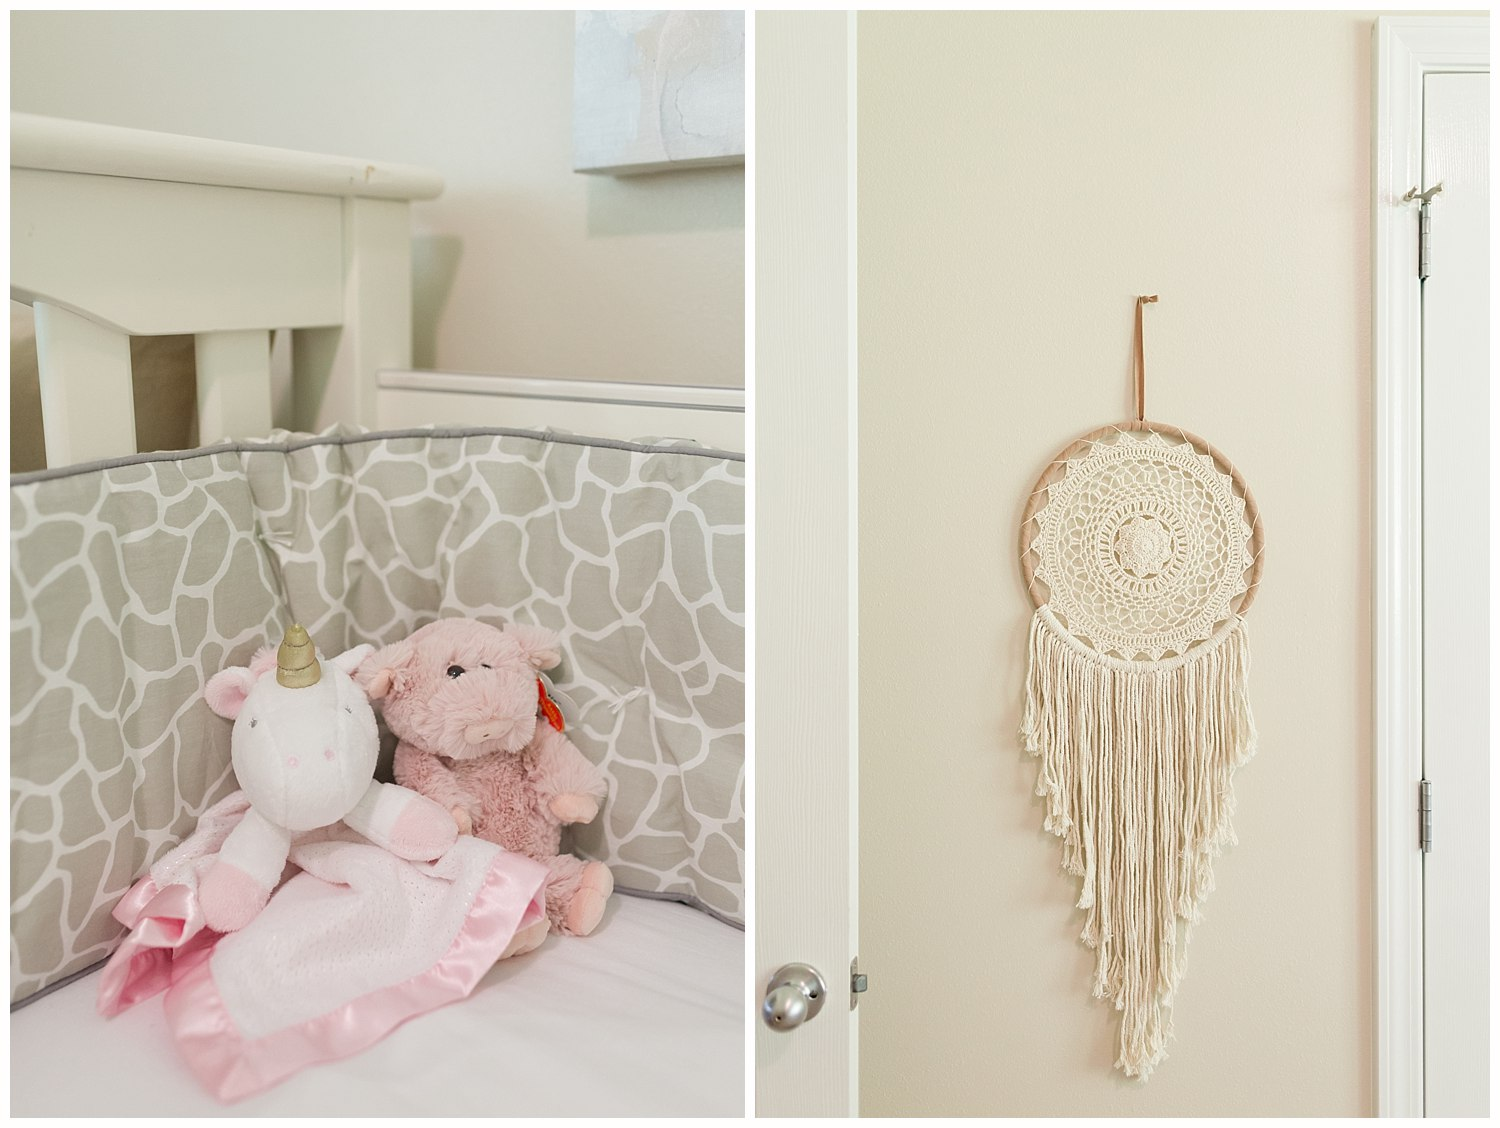 baby girl nursery details - dream catcher and stuffed animals in crib